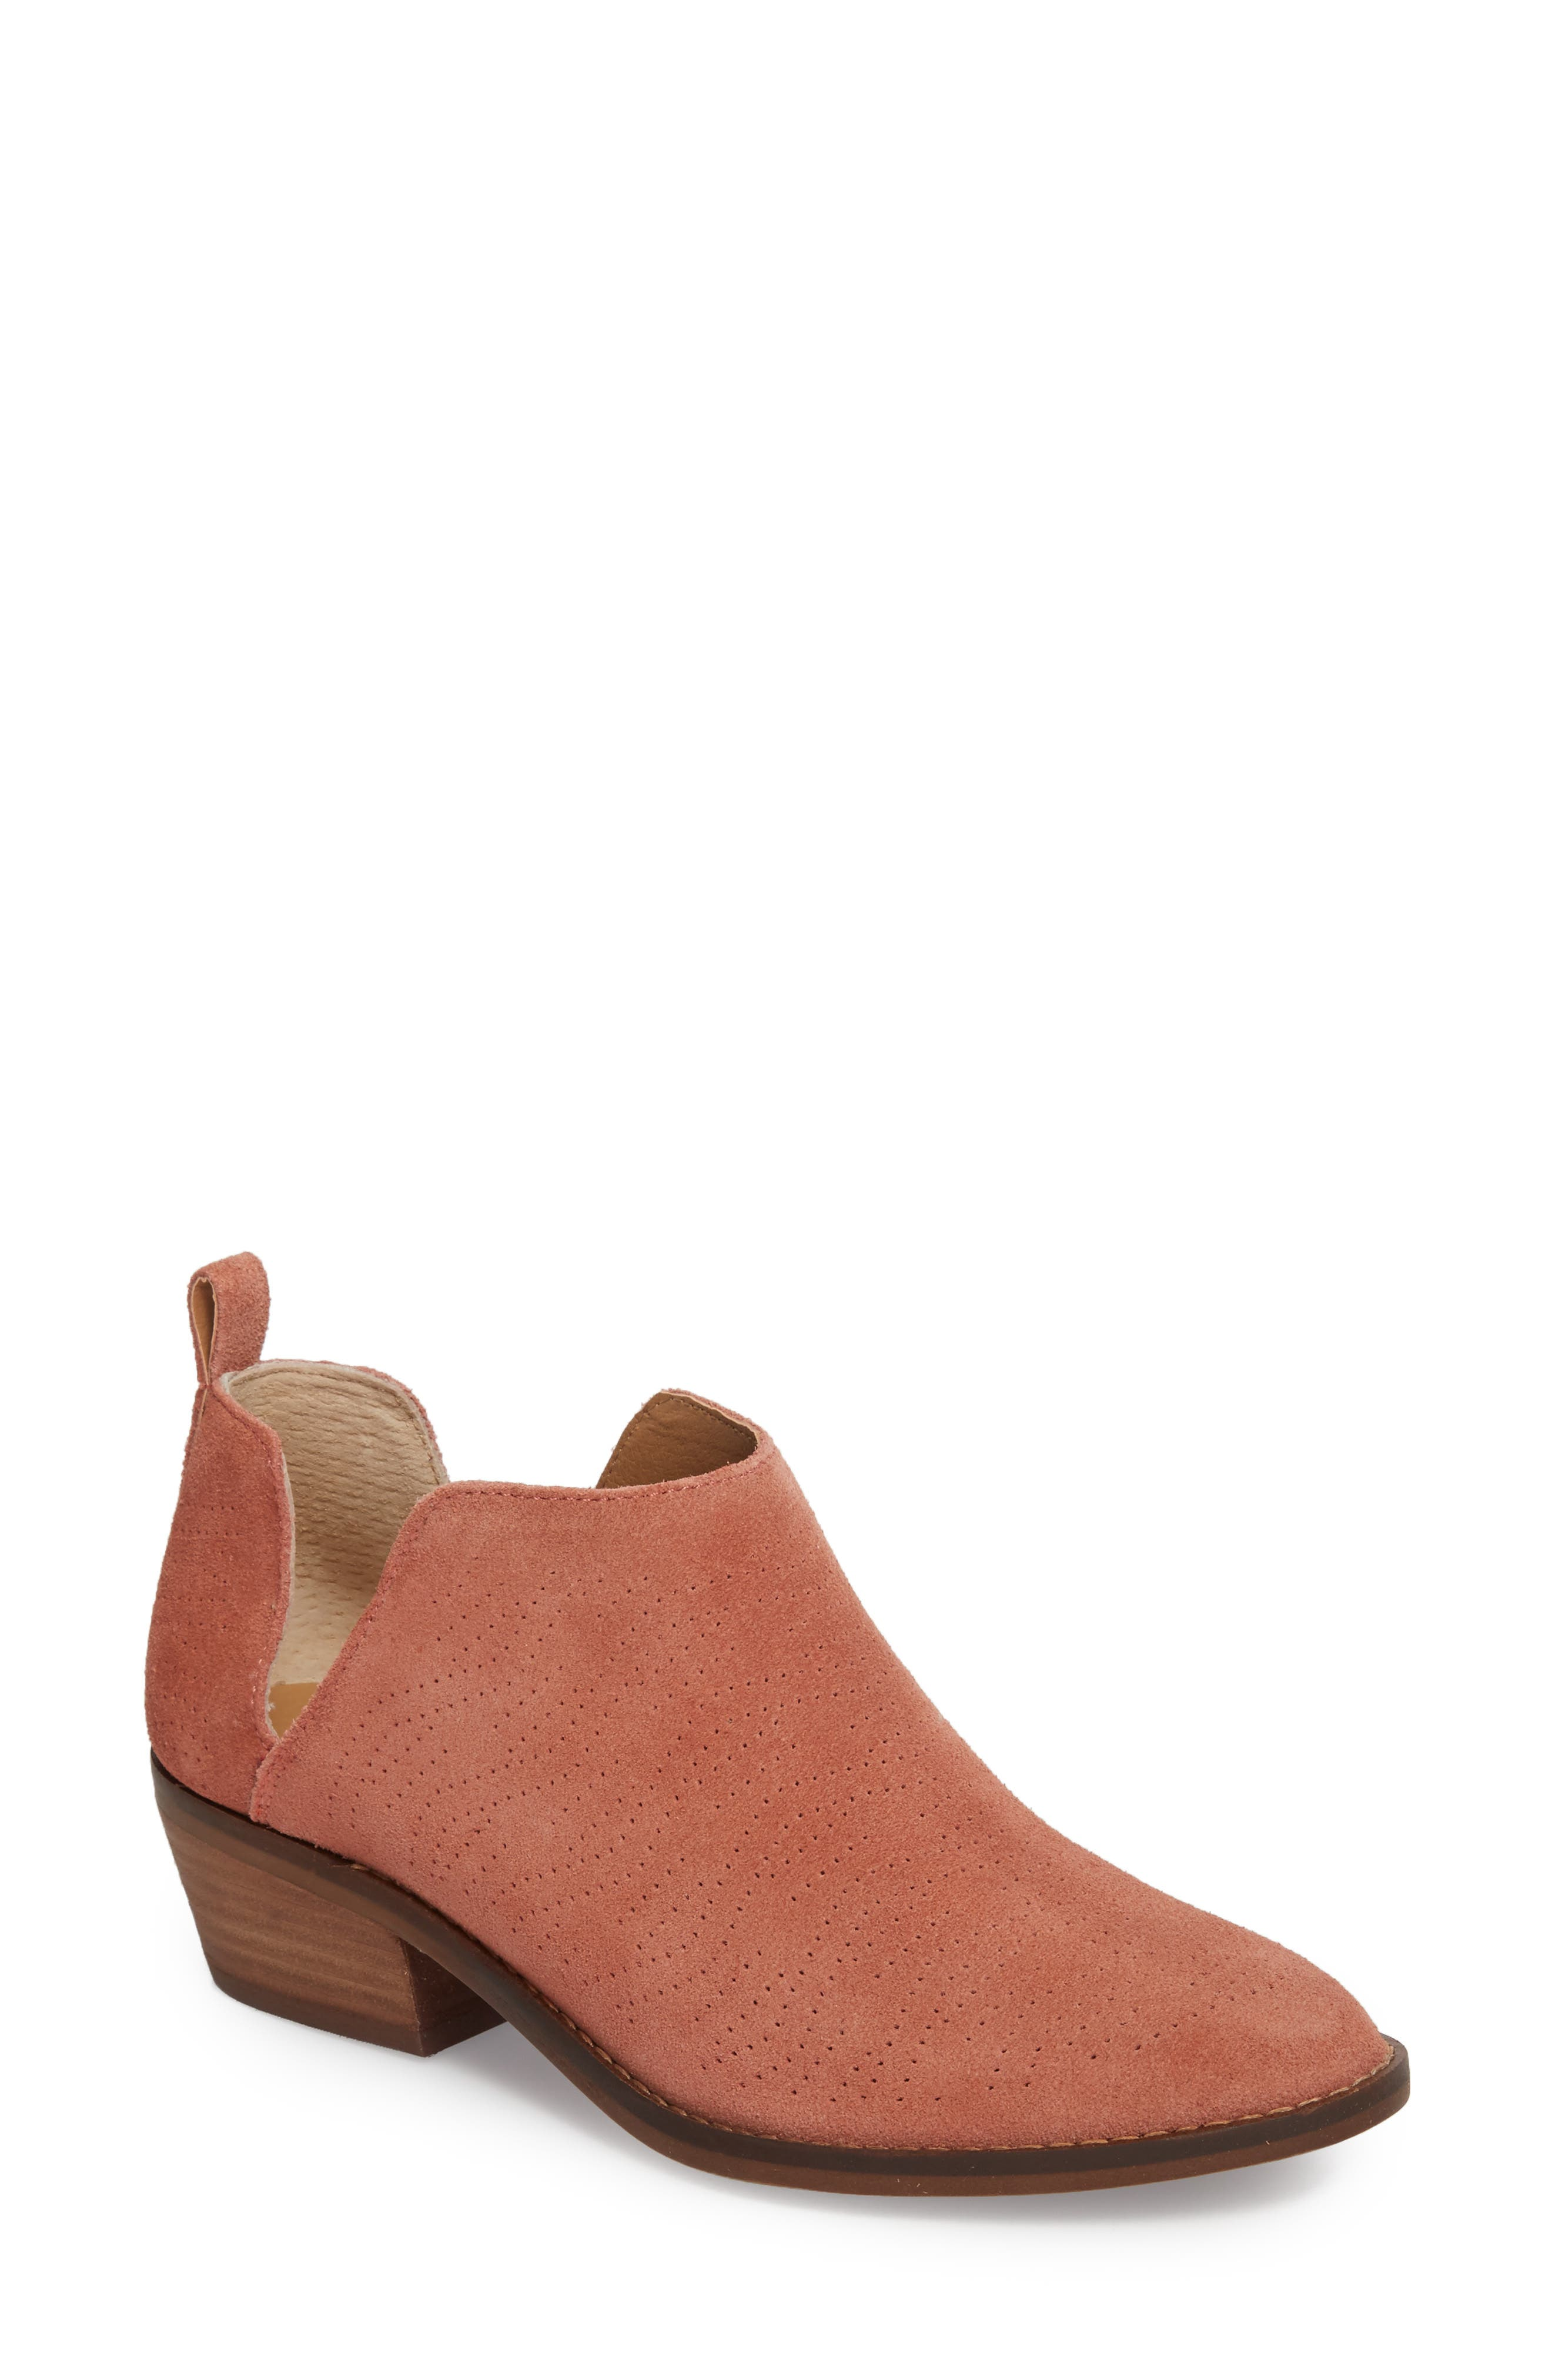 Fayth Bootie,                             Main thumbnail 1, color,                             Canyon Rose Suede